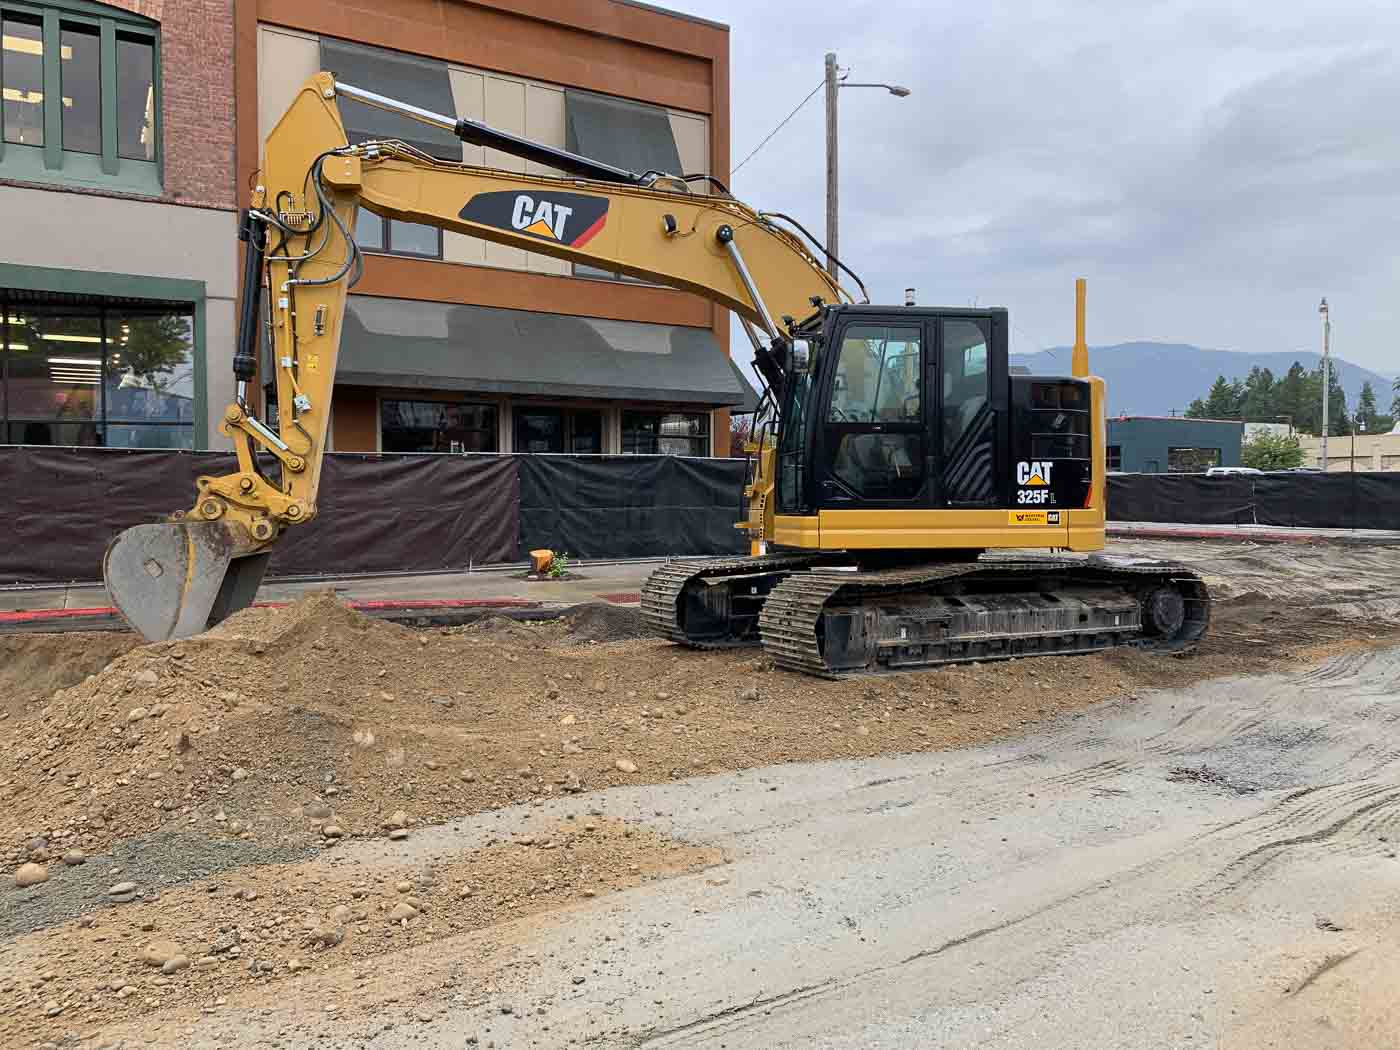 Picture of Sonray Enterprises Excavator at Construction Project